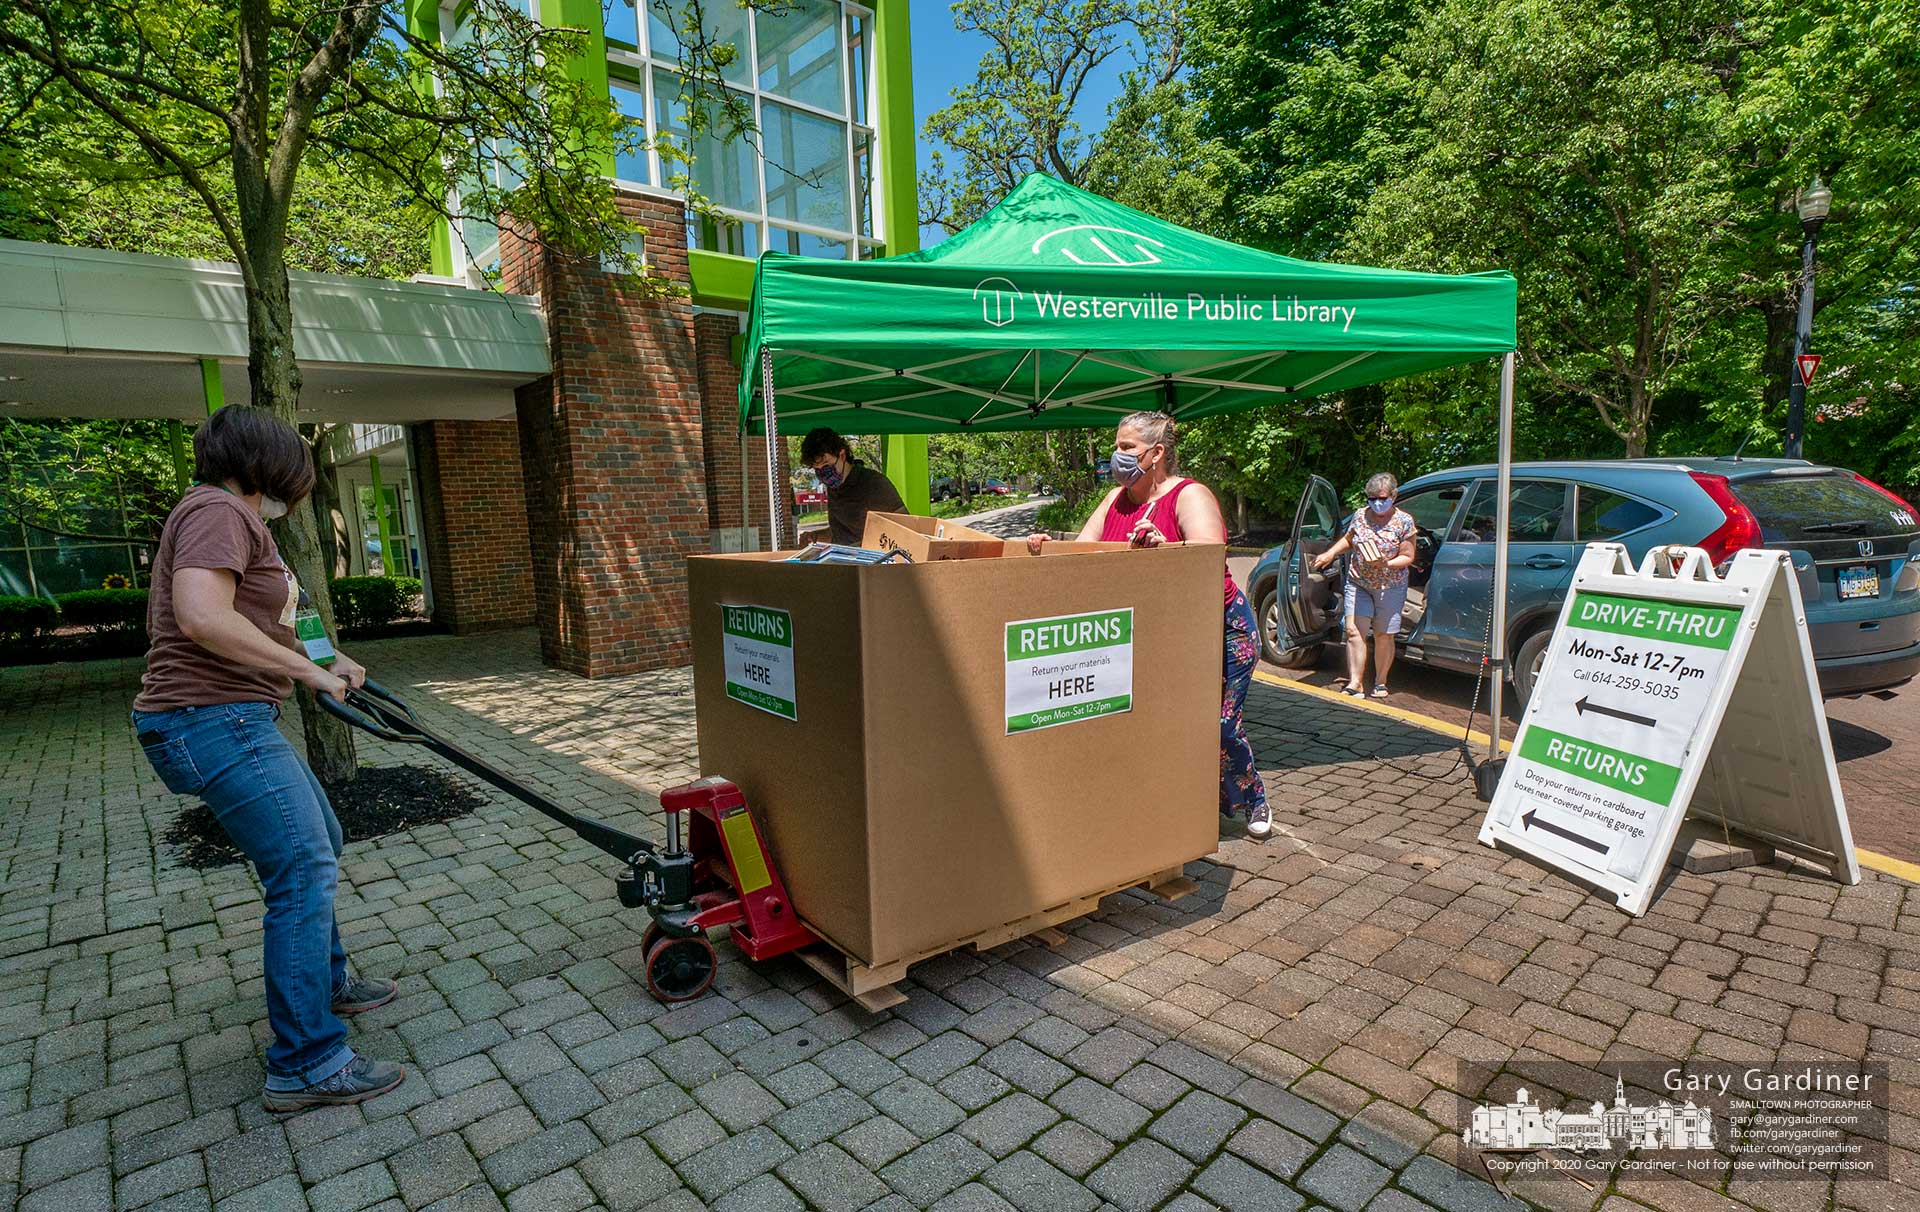 The first box of books filled with books returned to the Westerville Public Library by patrons is wheeled into the building as more patrons use the drive-thru process to return books kept in their homes during the coronavirus pandemic closing. My Final Photo for May 26, 2020.